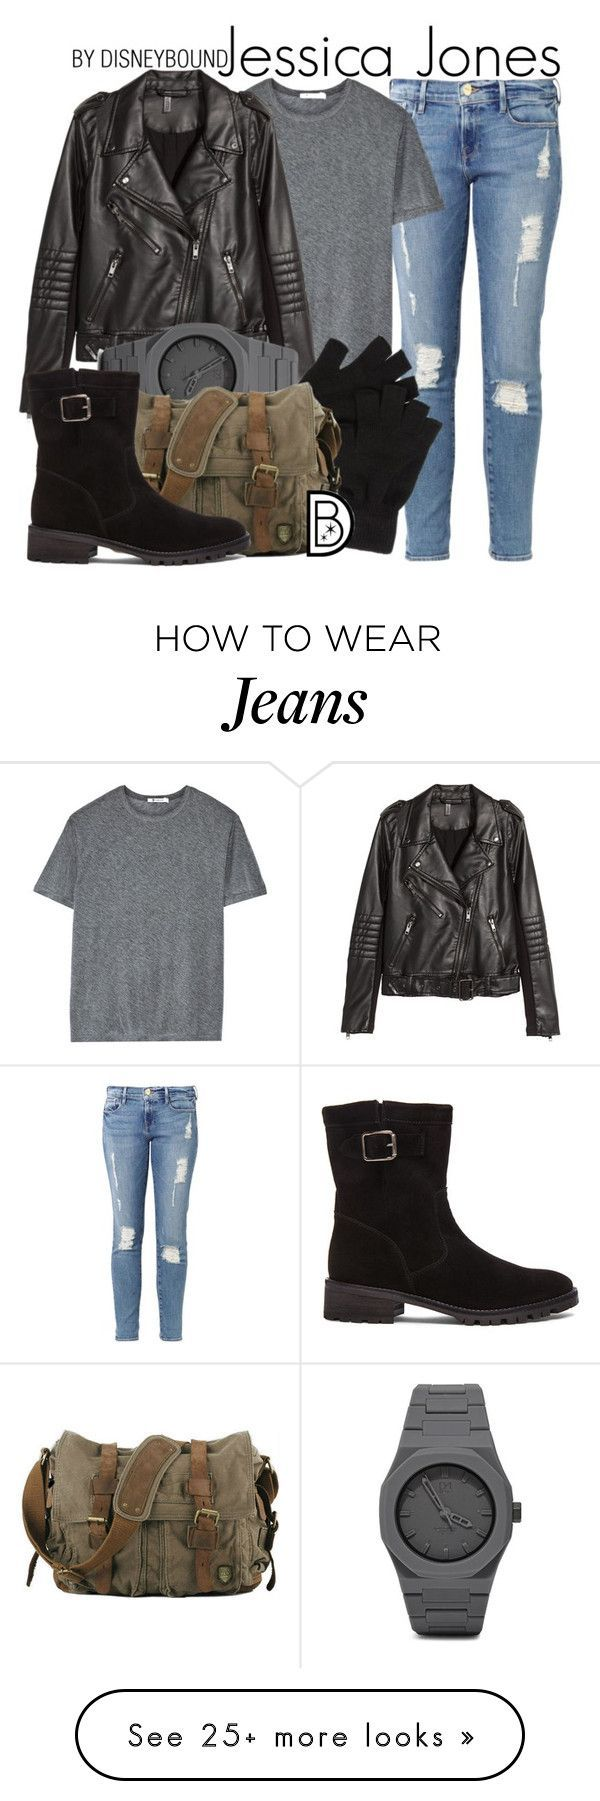 """Jessica Jones"" by leslieakay on Polyvore featuring Frame Denim, T By Alexander Wang, H&M, CC, Elyse Walker Los Angeles, women's clothing, women's fashion, women, female and woman 